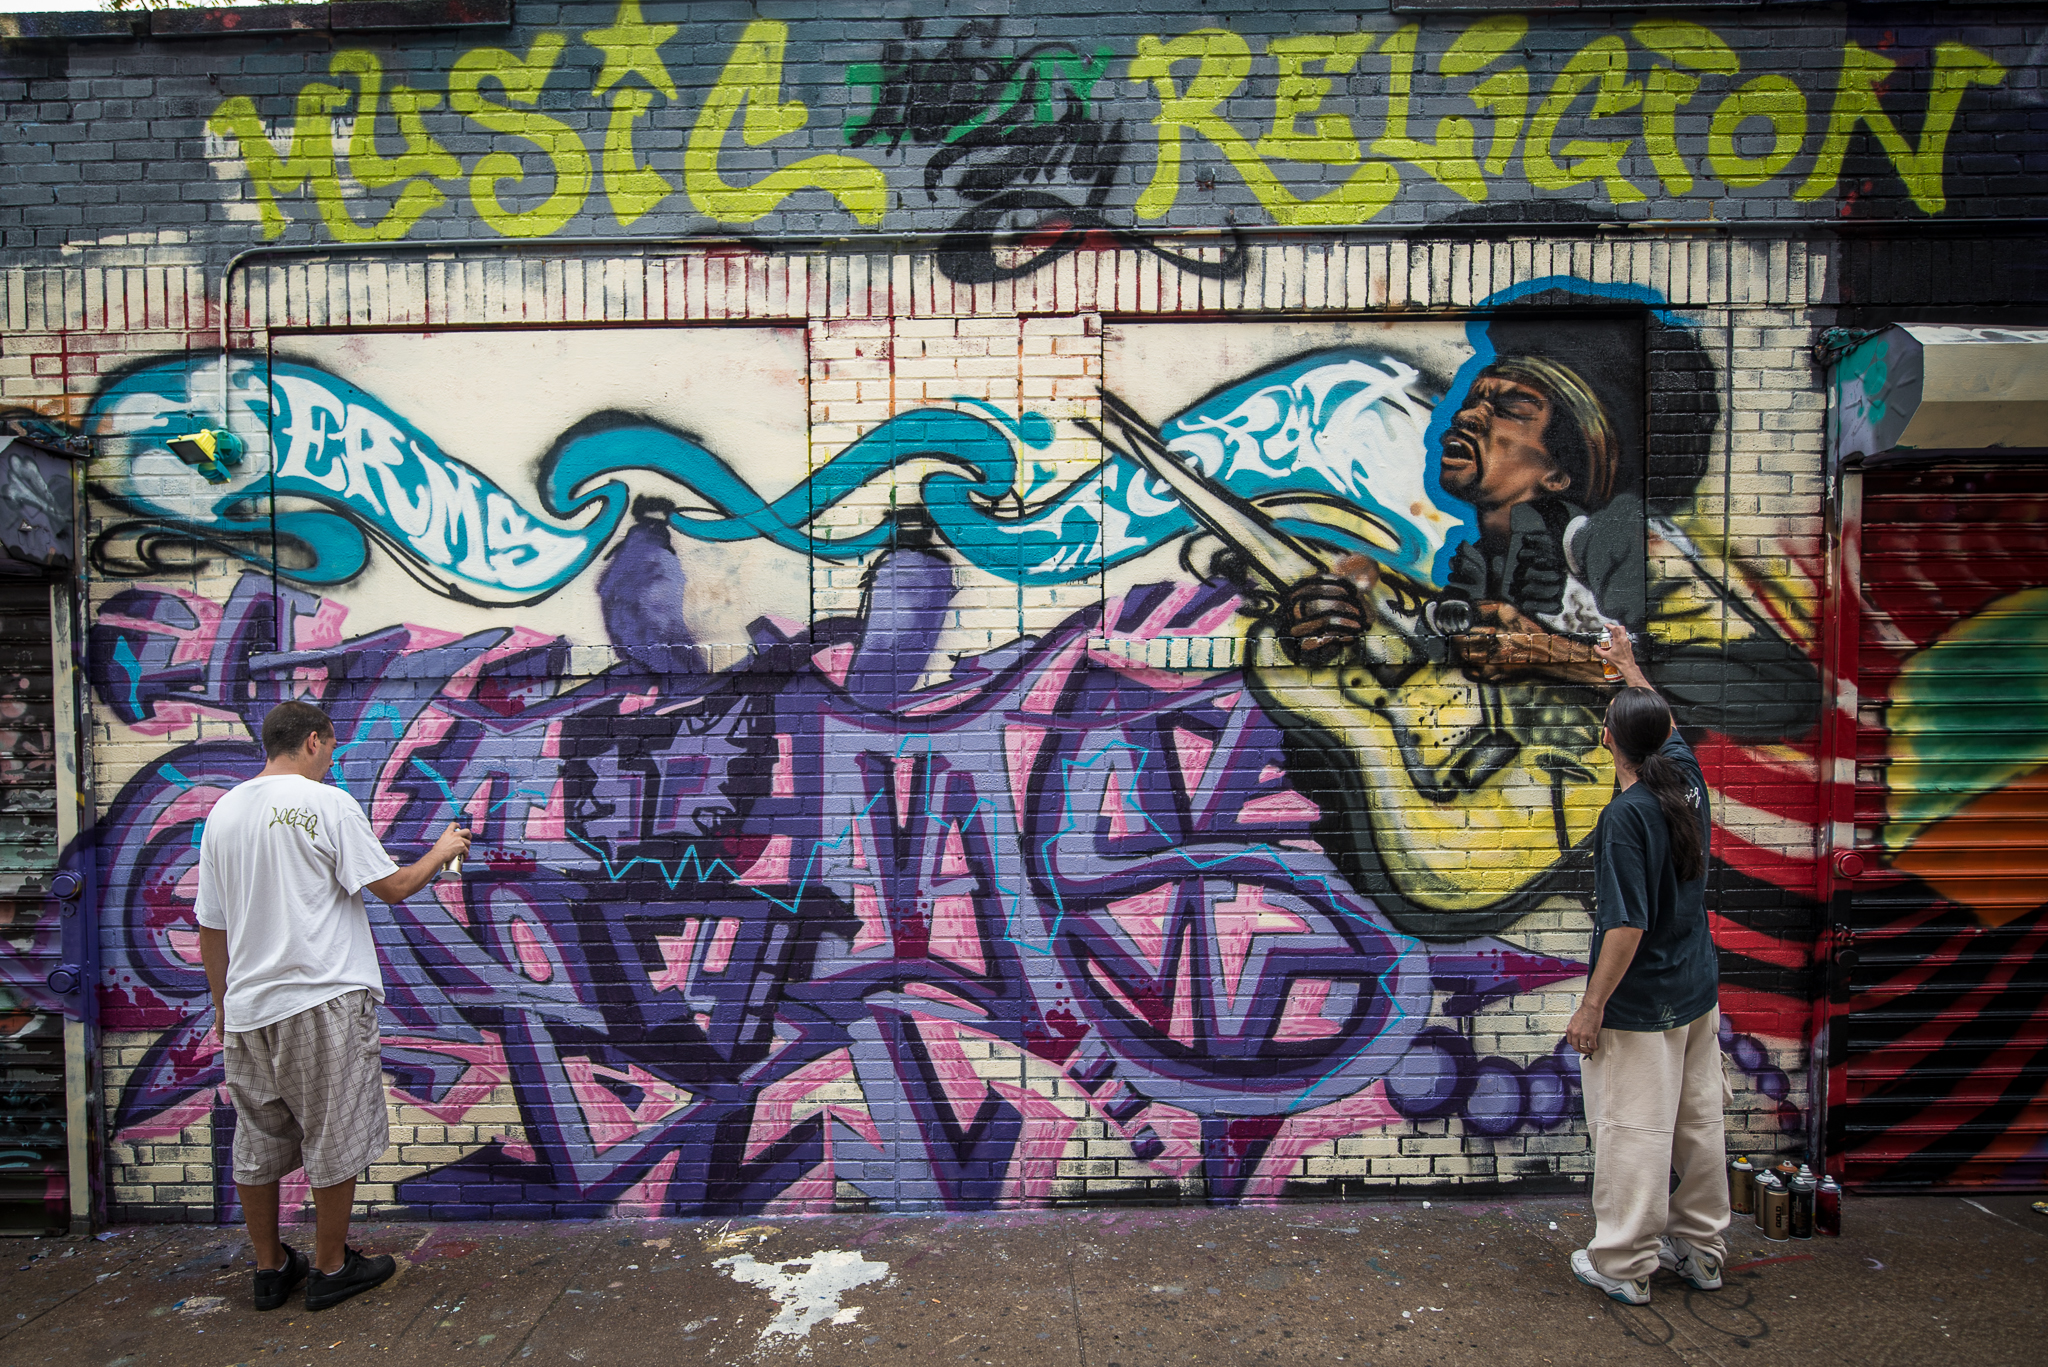 5pointz New york streetphoto 2013 850px-1